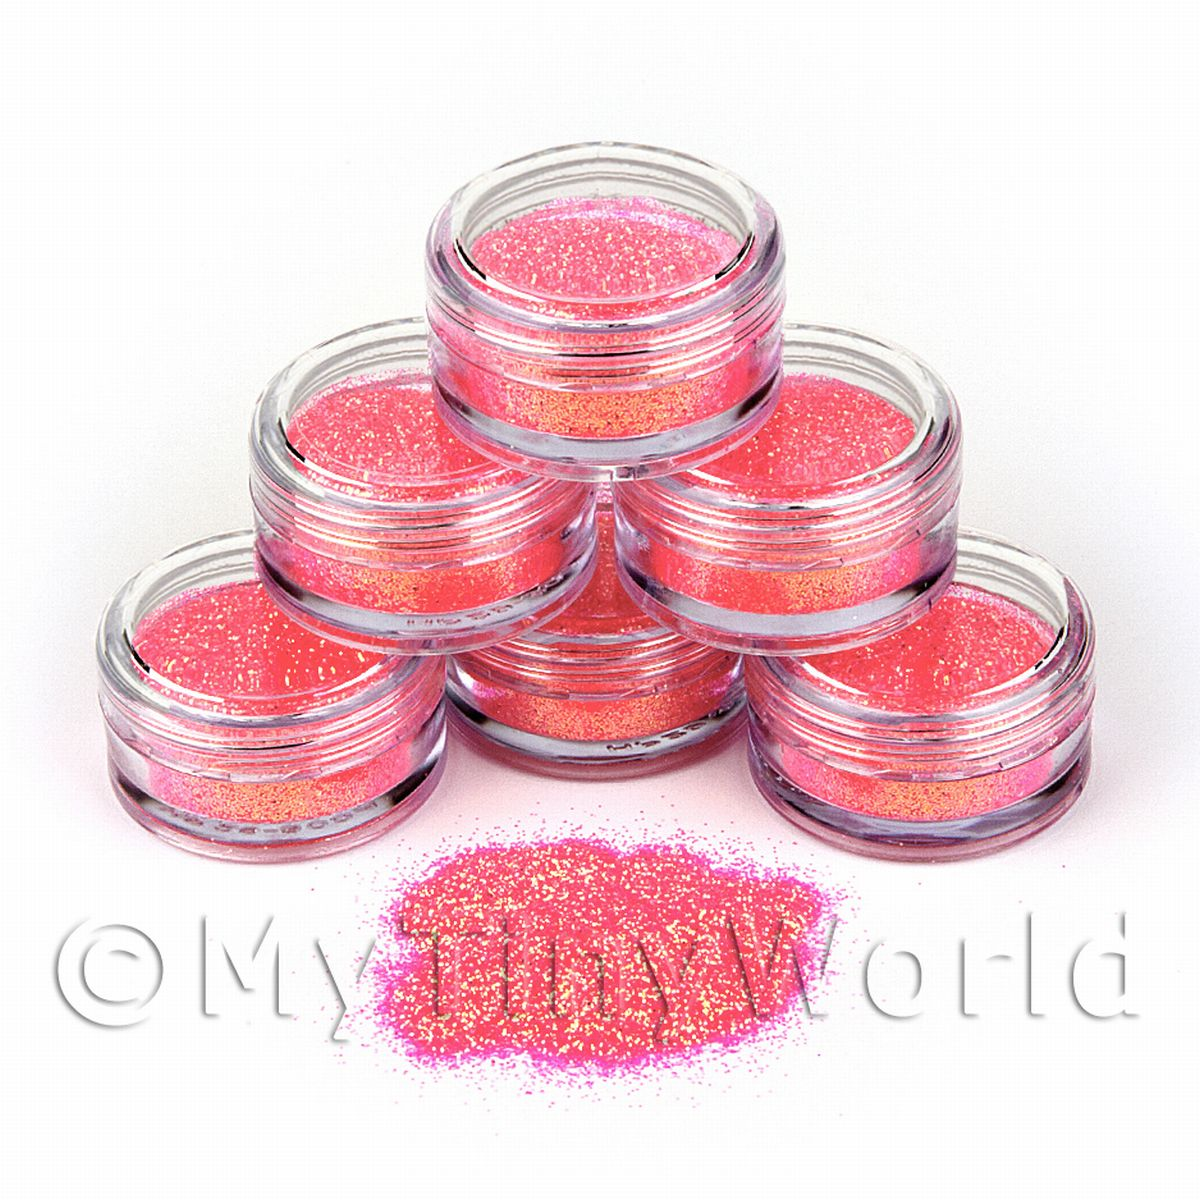 High Quality Nail Art Glitter - 2g Pot - Pink Princess